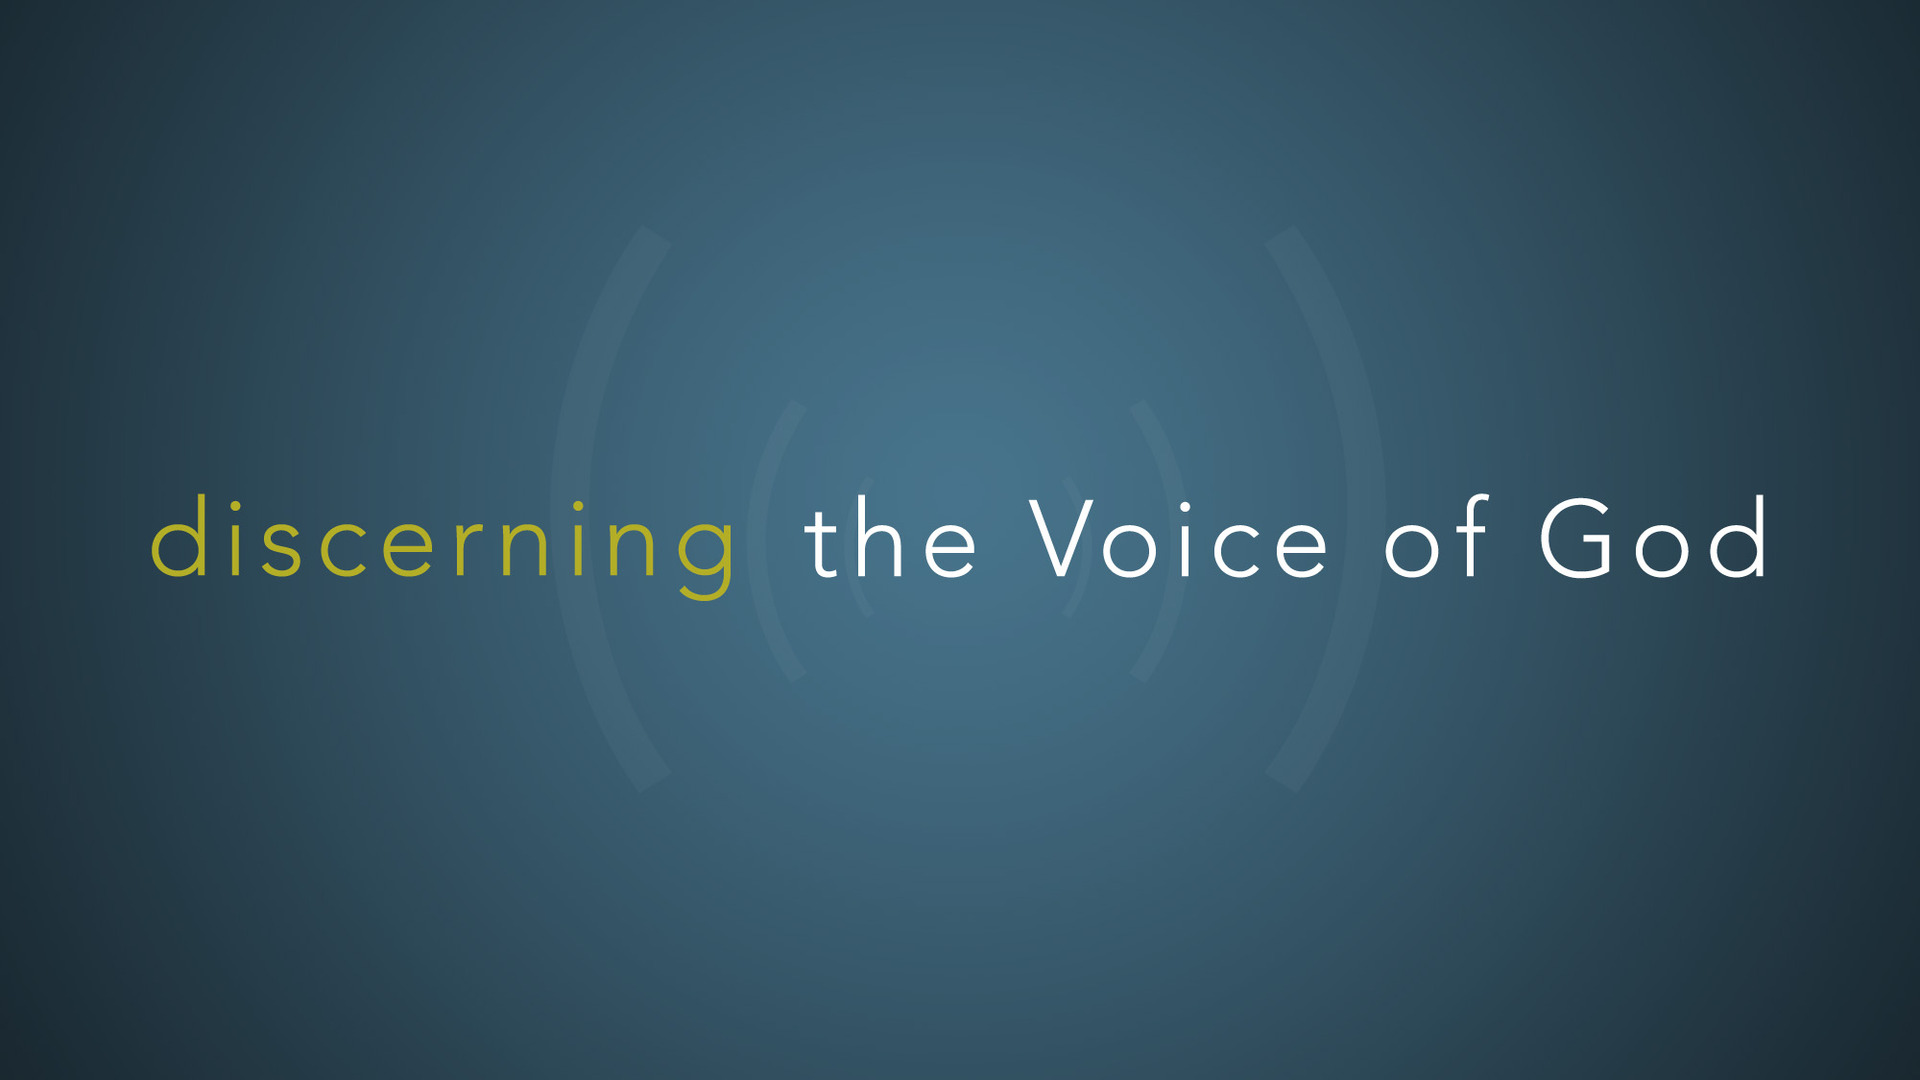 Discerning the Voice of God - Tangible Grace Fellowship | Allen, Texas